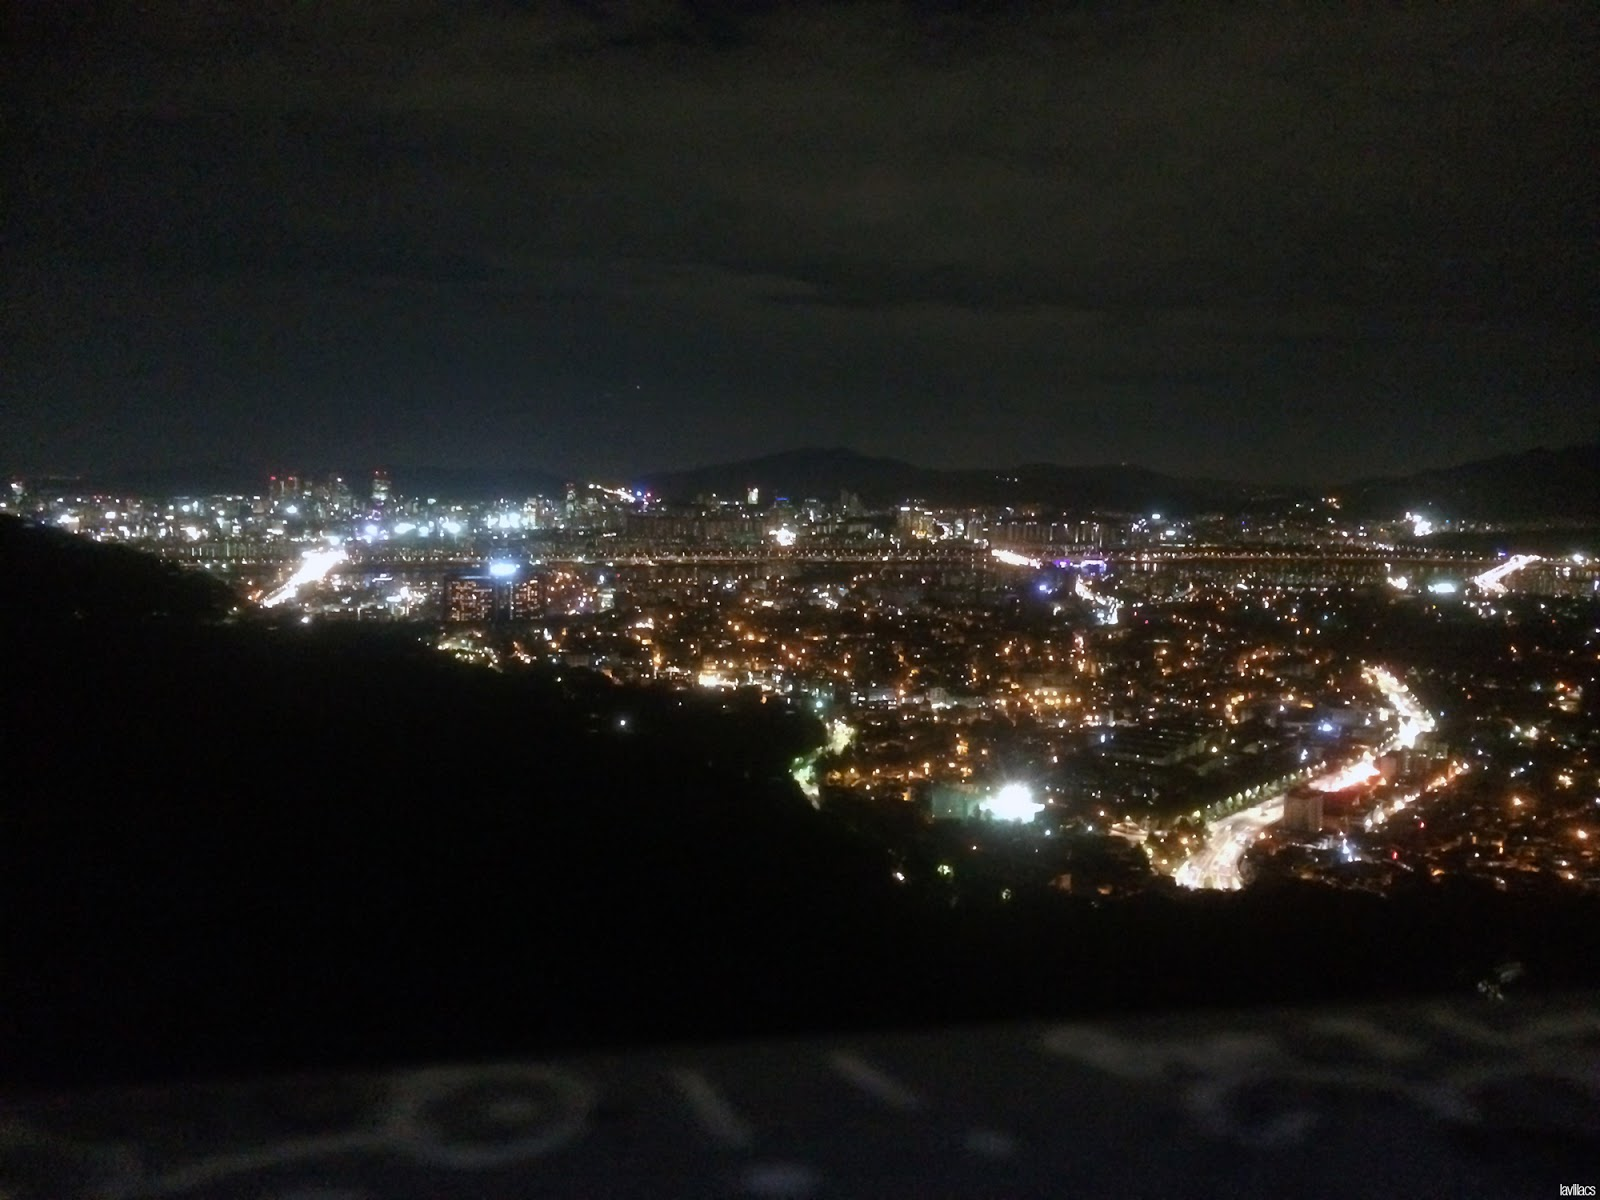 Seoul, Korea - Summer Study Abroad 2014 - View of Seoul from Namsan N Seoul Tower base at night